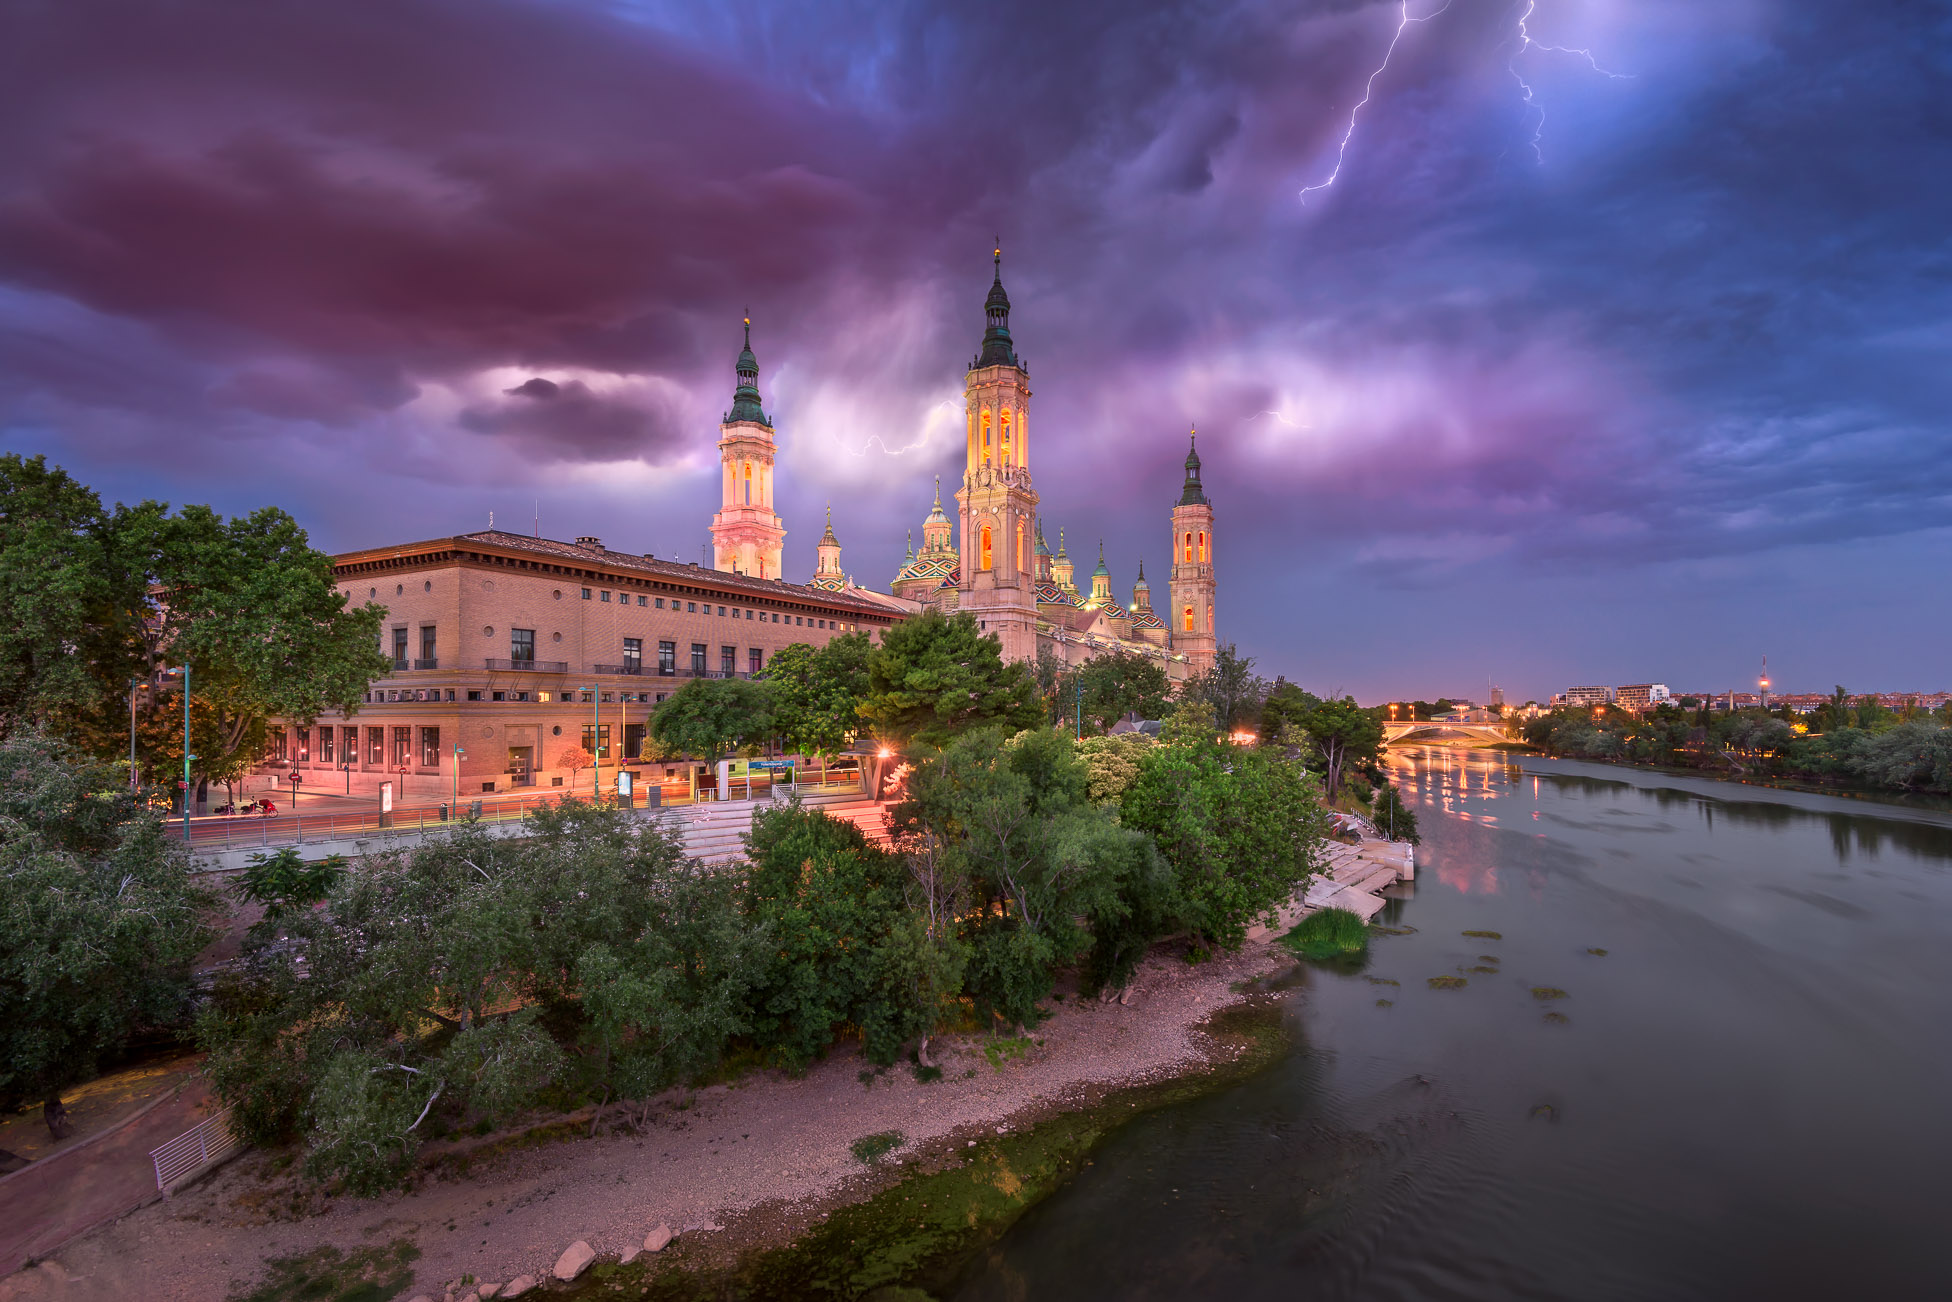 Lighting Storm over Basilica of Our Lady of the Pillar and Ebro River, Zaragoza, Aragon, Spain